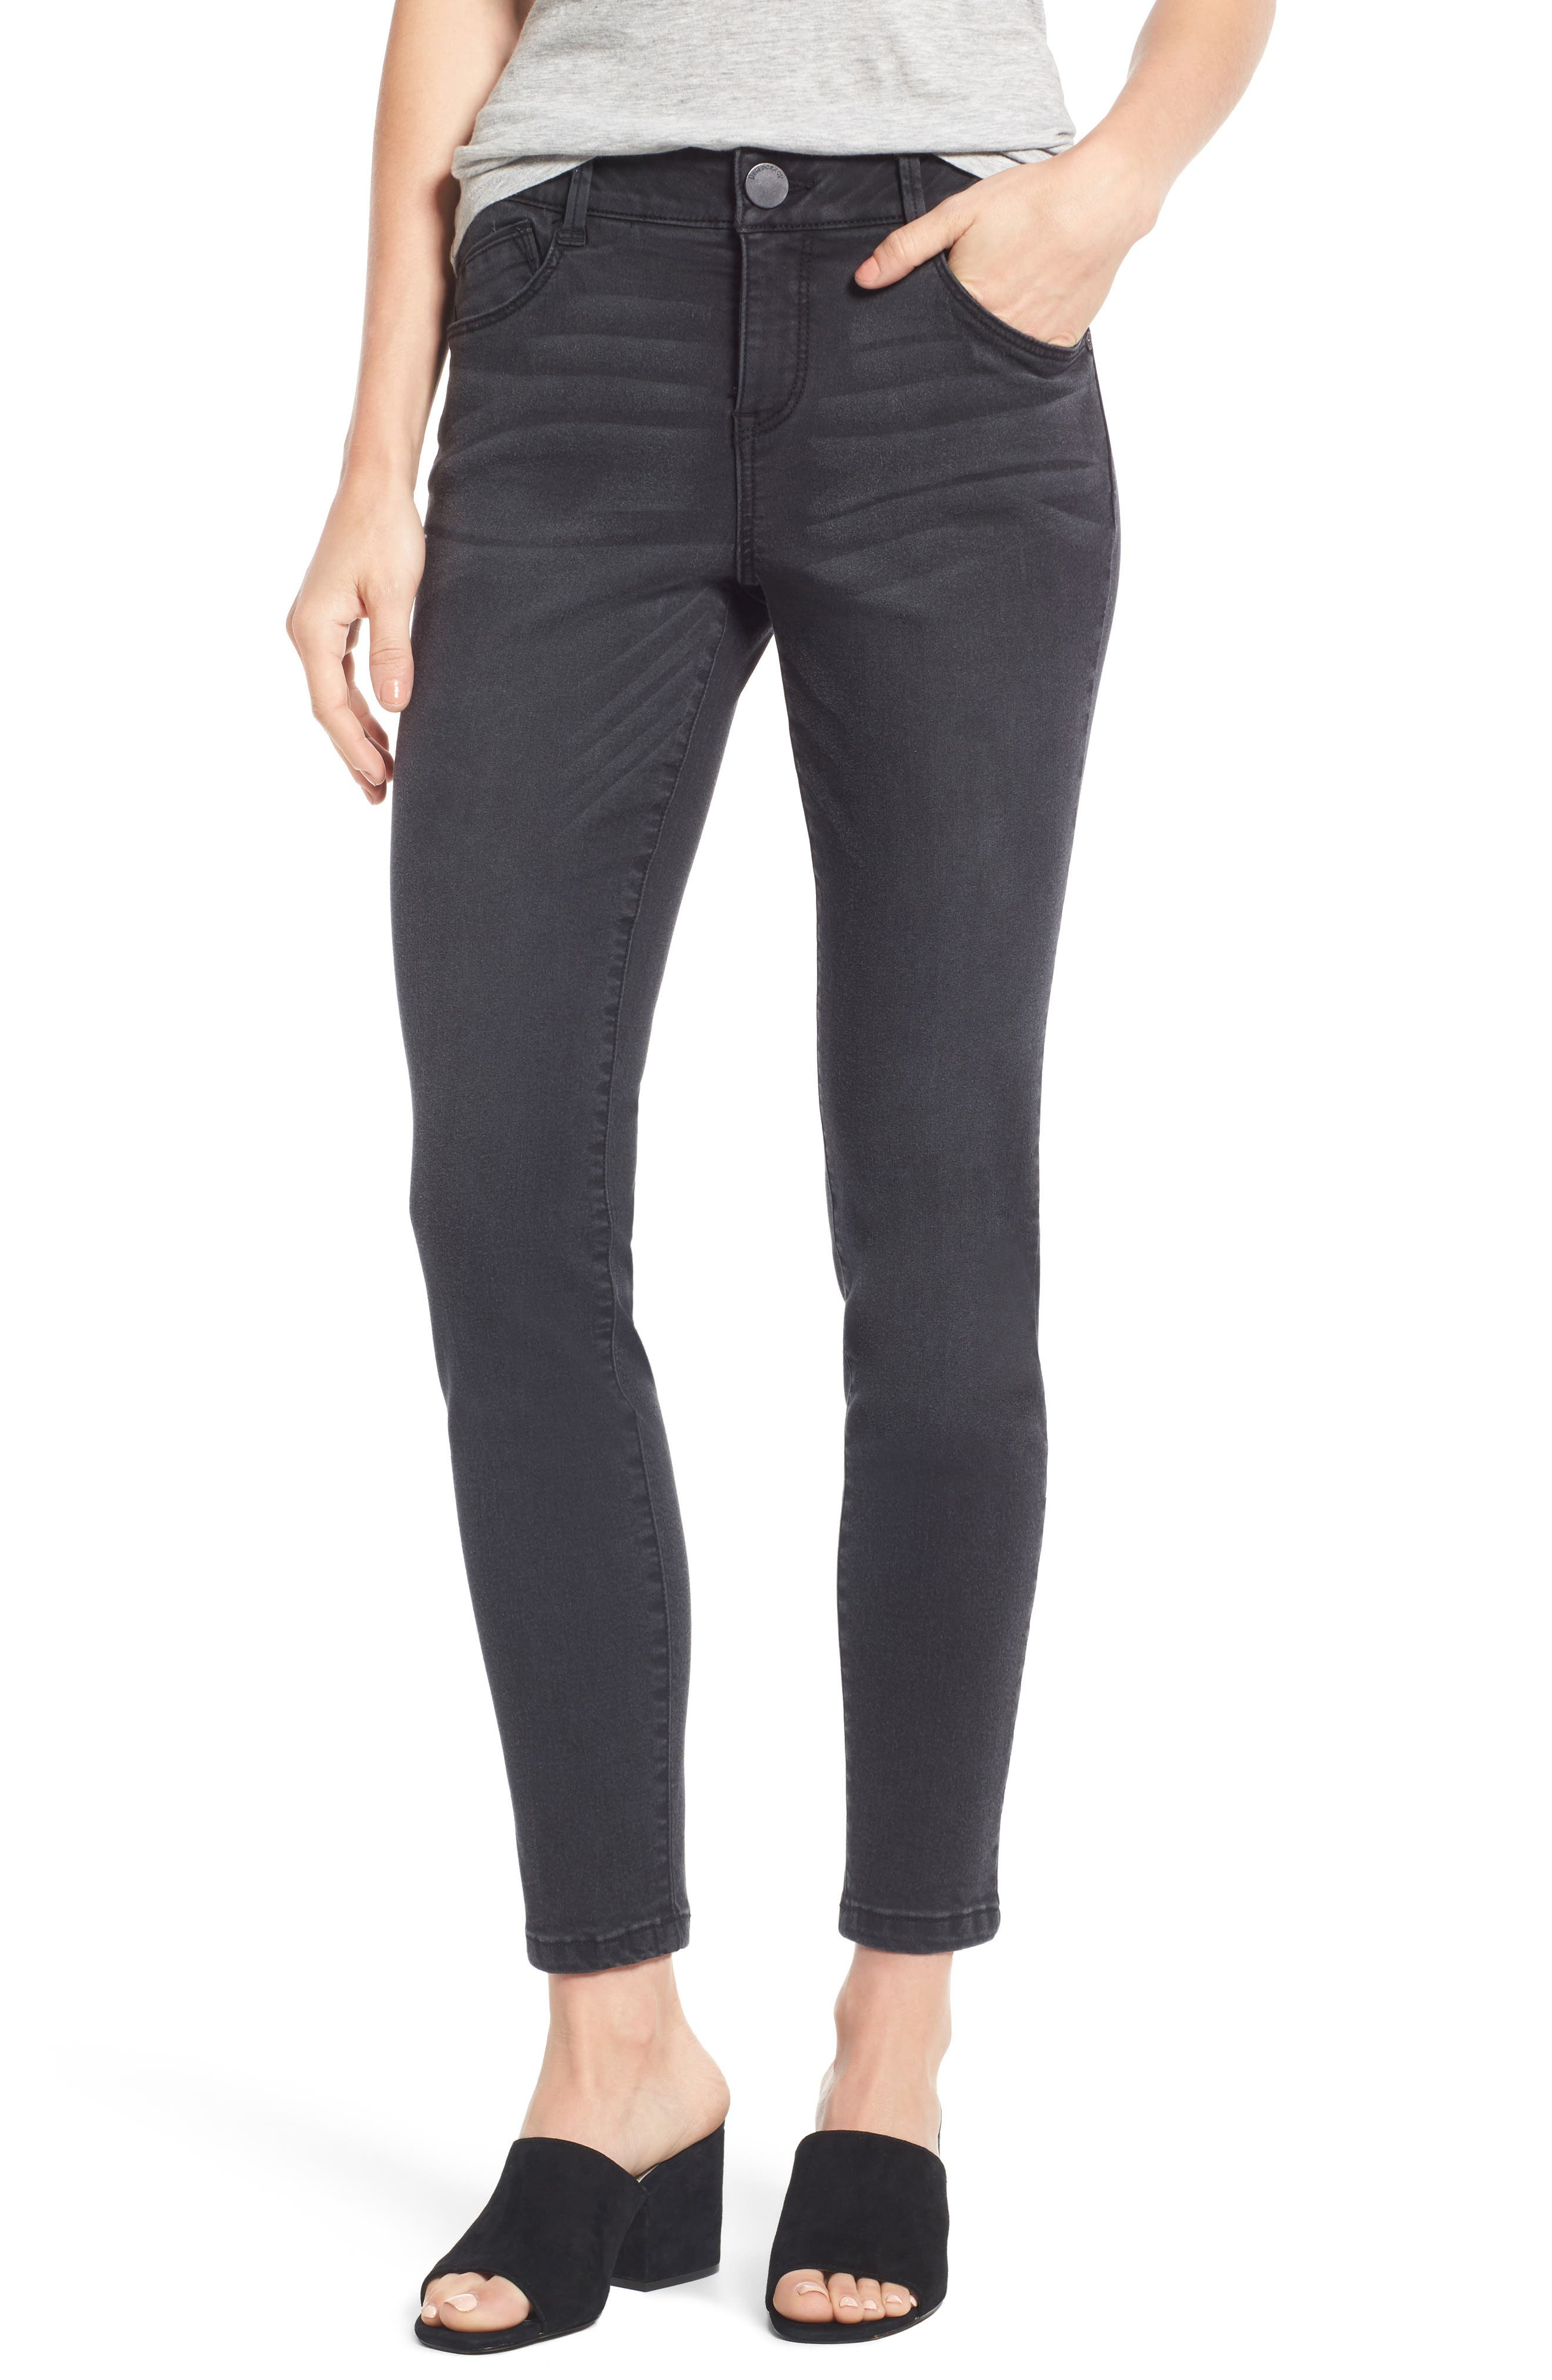 Ab-solution Stretch Ankle Skinny Jeans,                         Main,                         color, 020